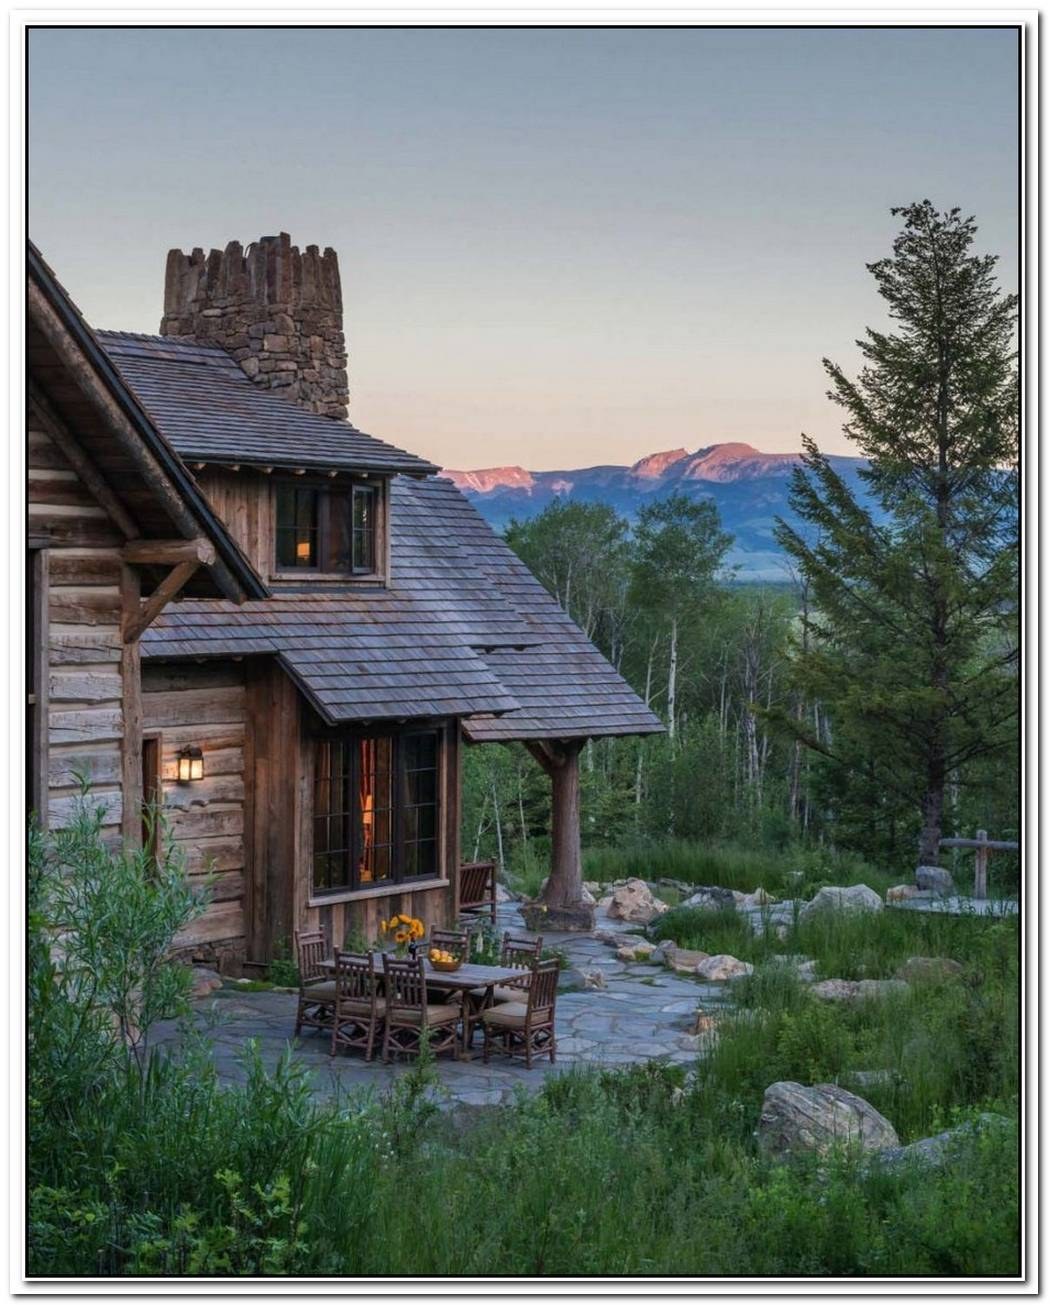 Mountain Getaway Is A Spectacular Rustic Retreat Focused On Nature